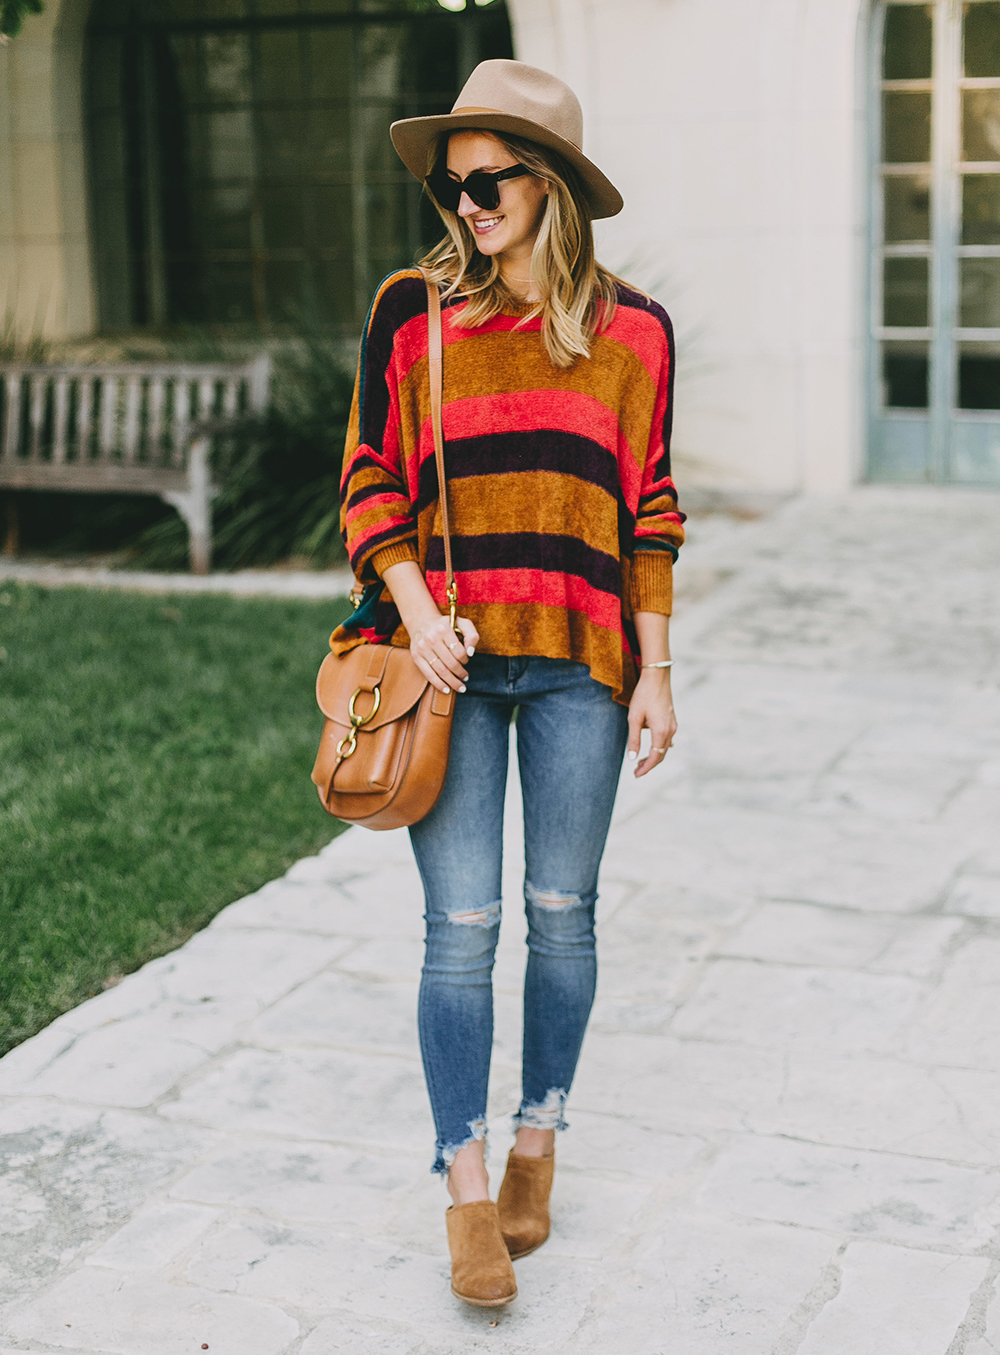 livvyland-blog-olivia-watson-austin-texas-fashion-blogger-free-people-oversize-striped-sweater-boho-chic-10